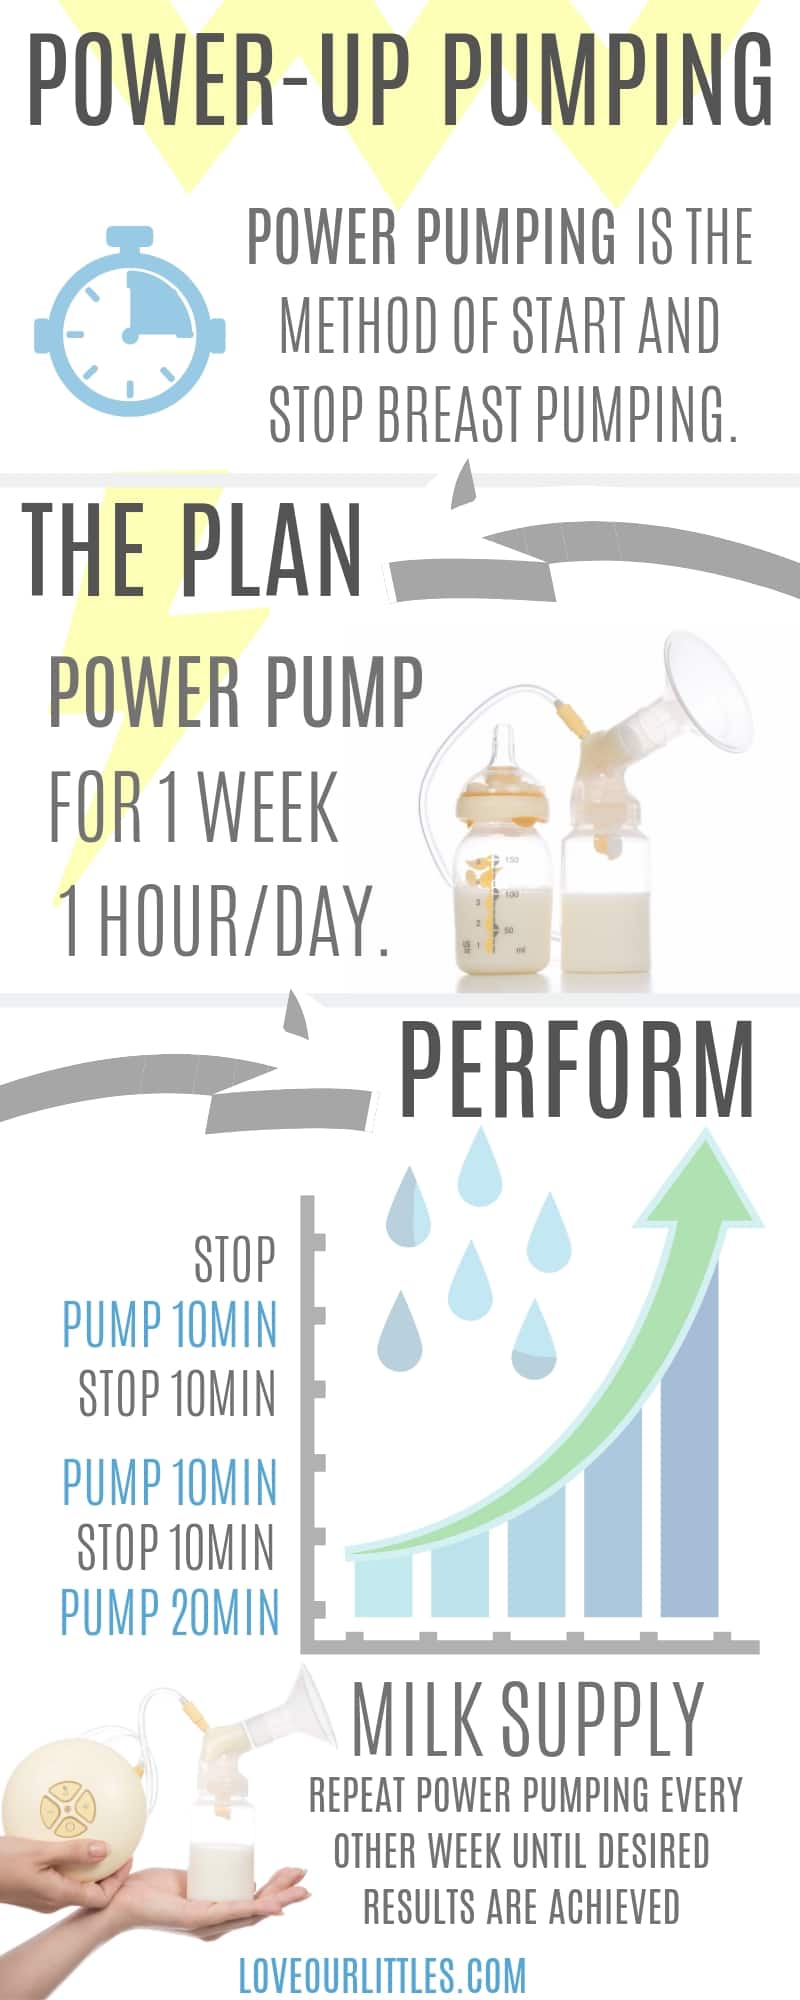 Power-Up breast pumping infographic to demonstrate power pumping